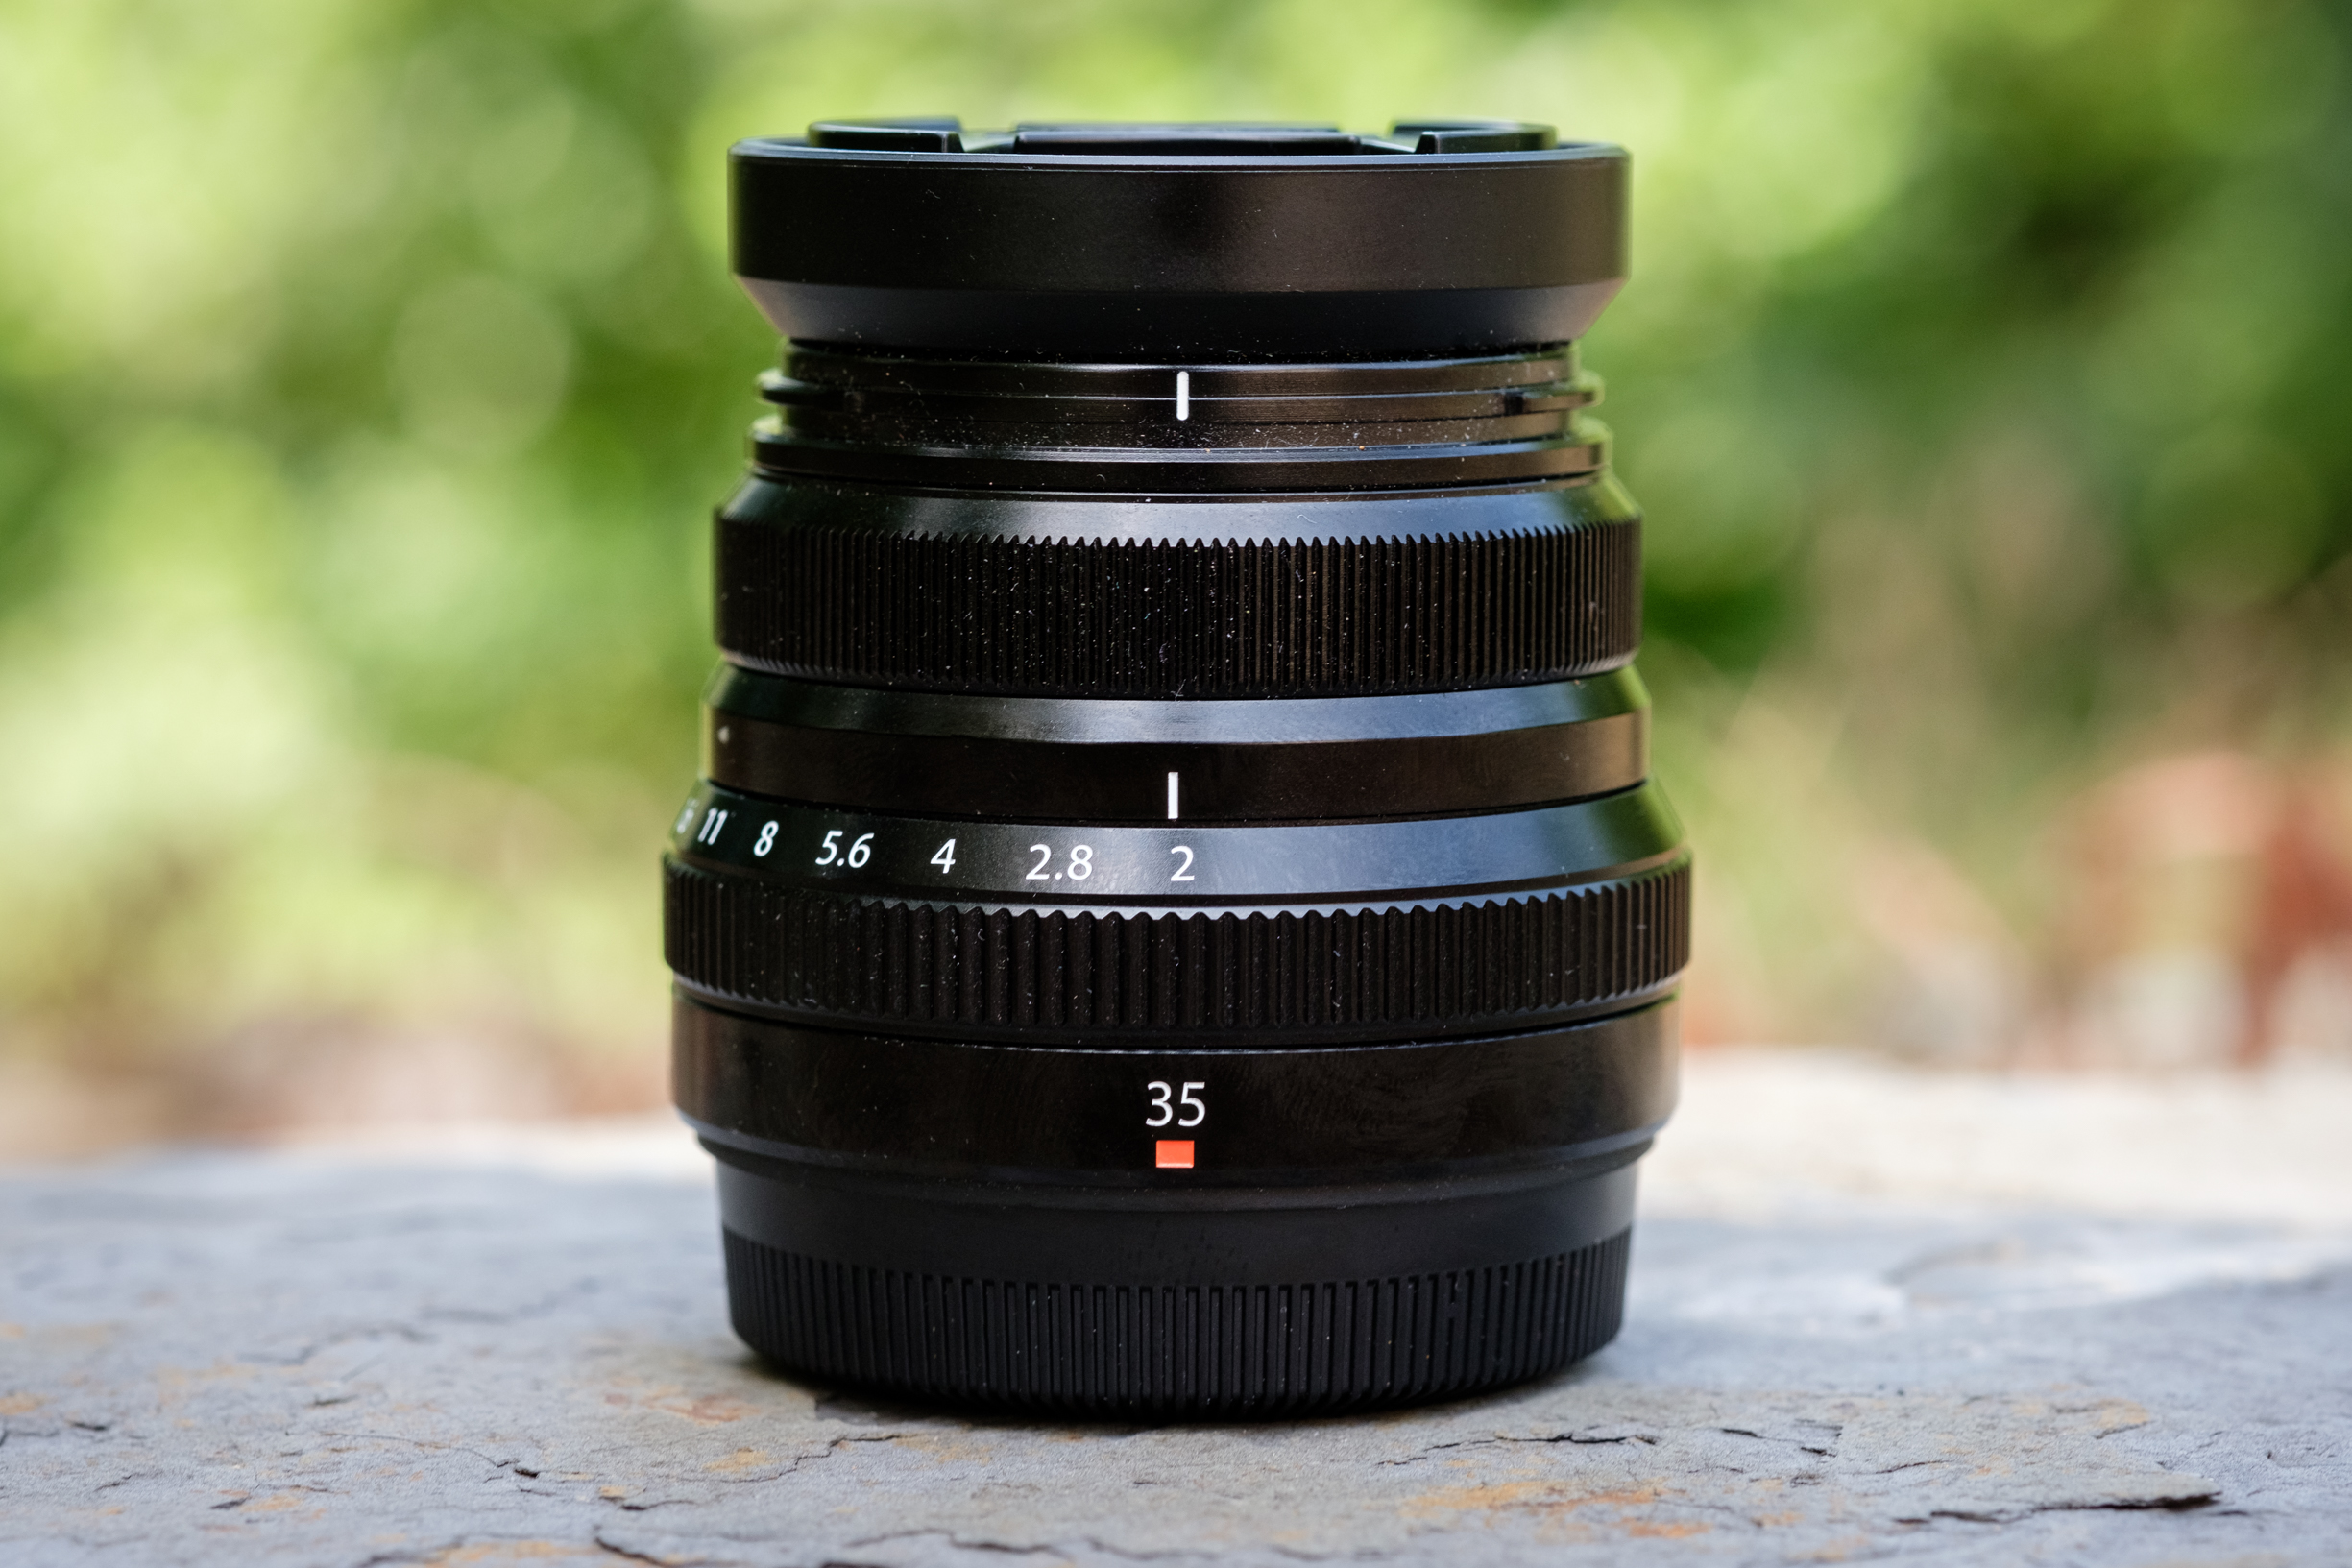 The Fuji 35mm f/2. This is such a tiny lens that packs a big punch. The image quality it produces is excellent.